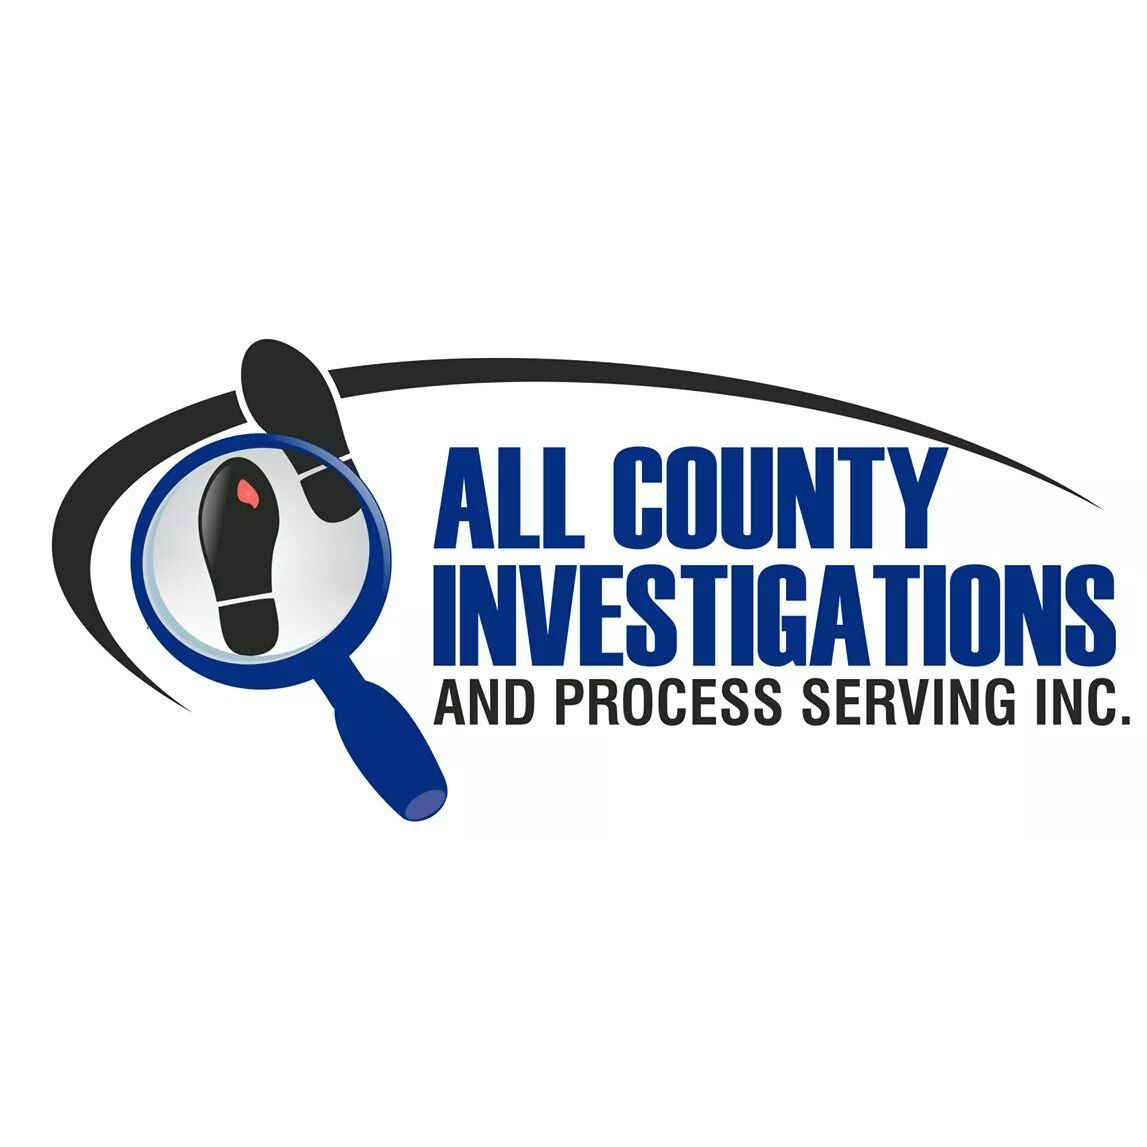 All County Investigations and Process Serving, Inc. - Elgin, IL 60120 - (847)429-1790   ShowMeLocal.com